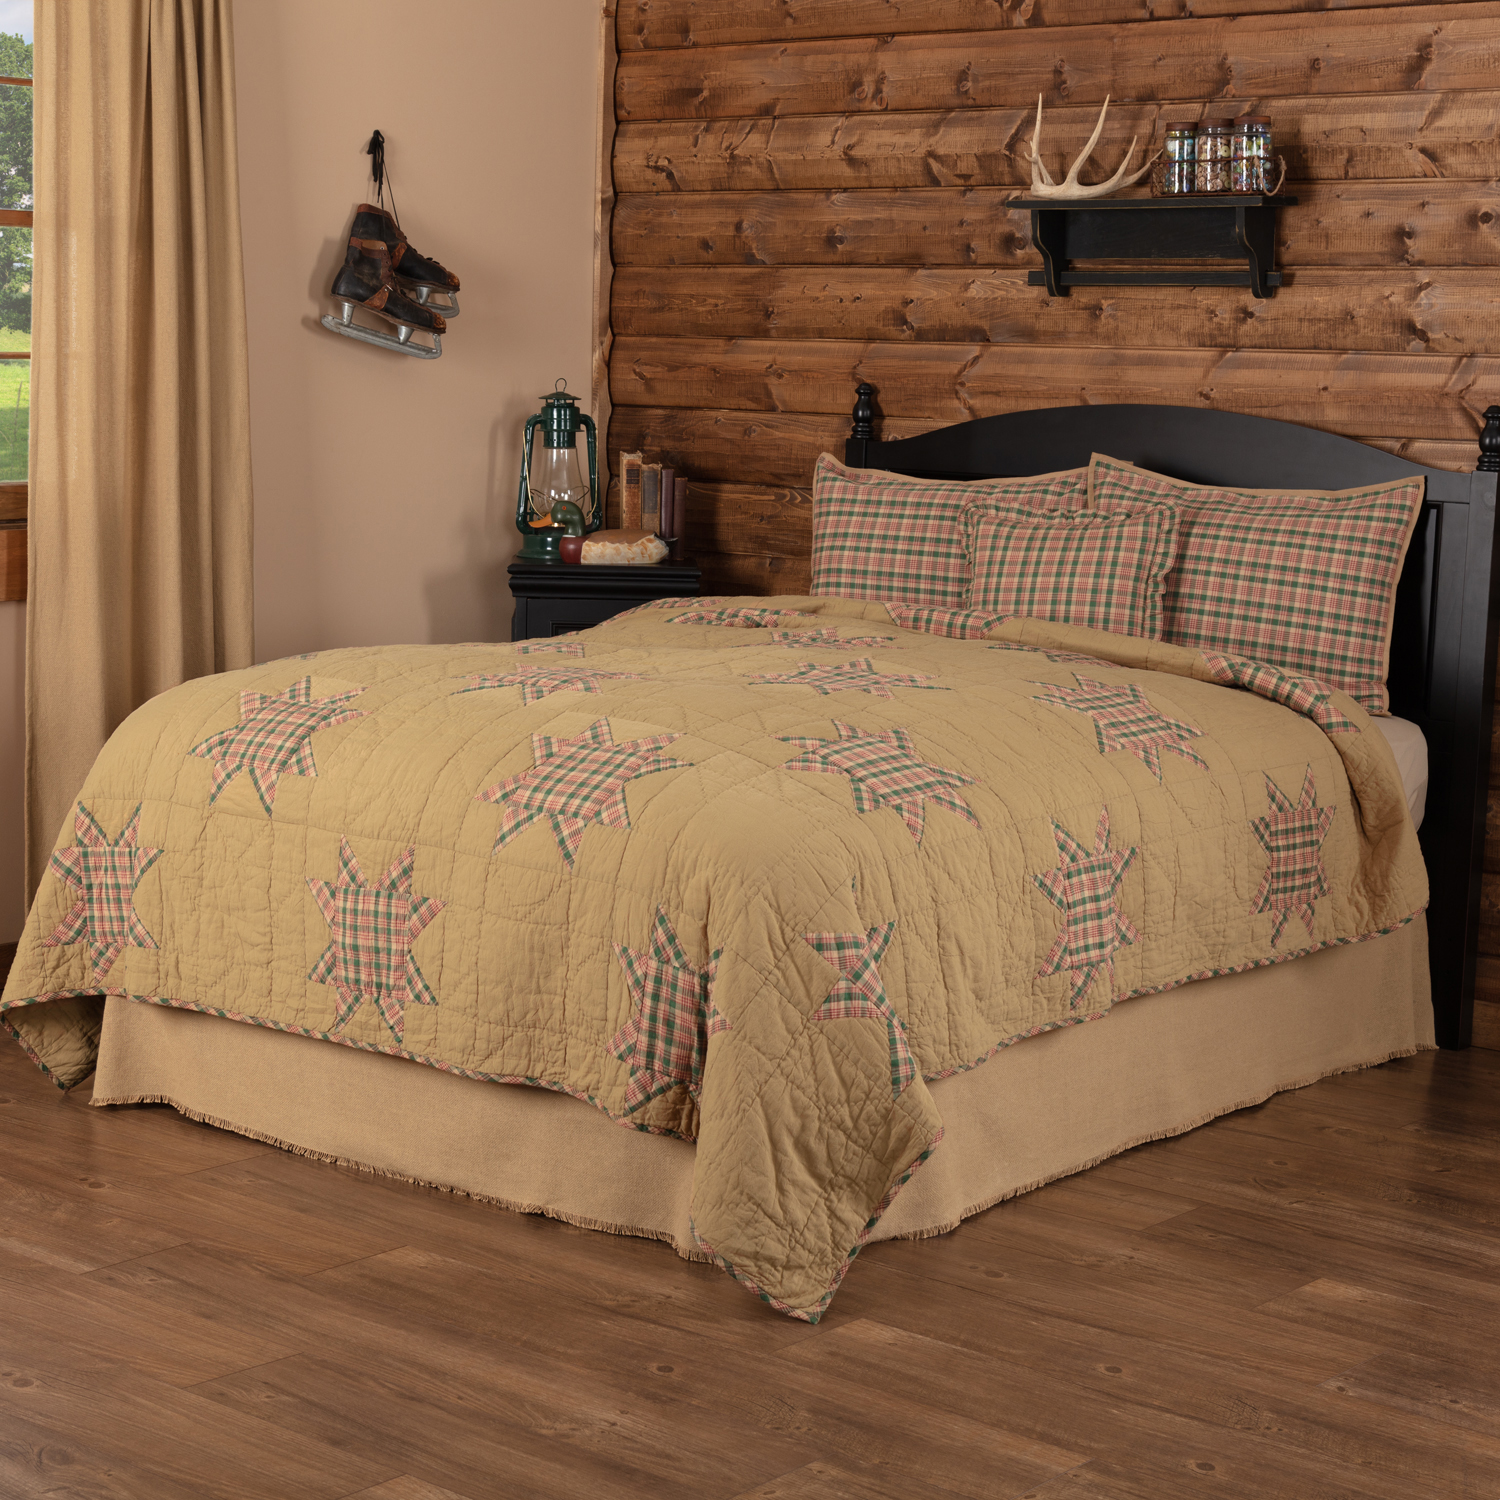 Rustic Star King Quilt Set; 1-Quilt 105Wx95L w/2 Shams 21x37, 1-Pillow Cover 16x16